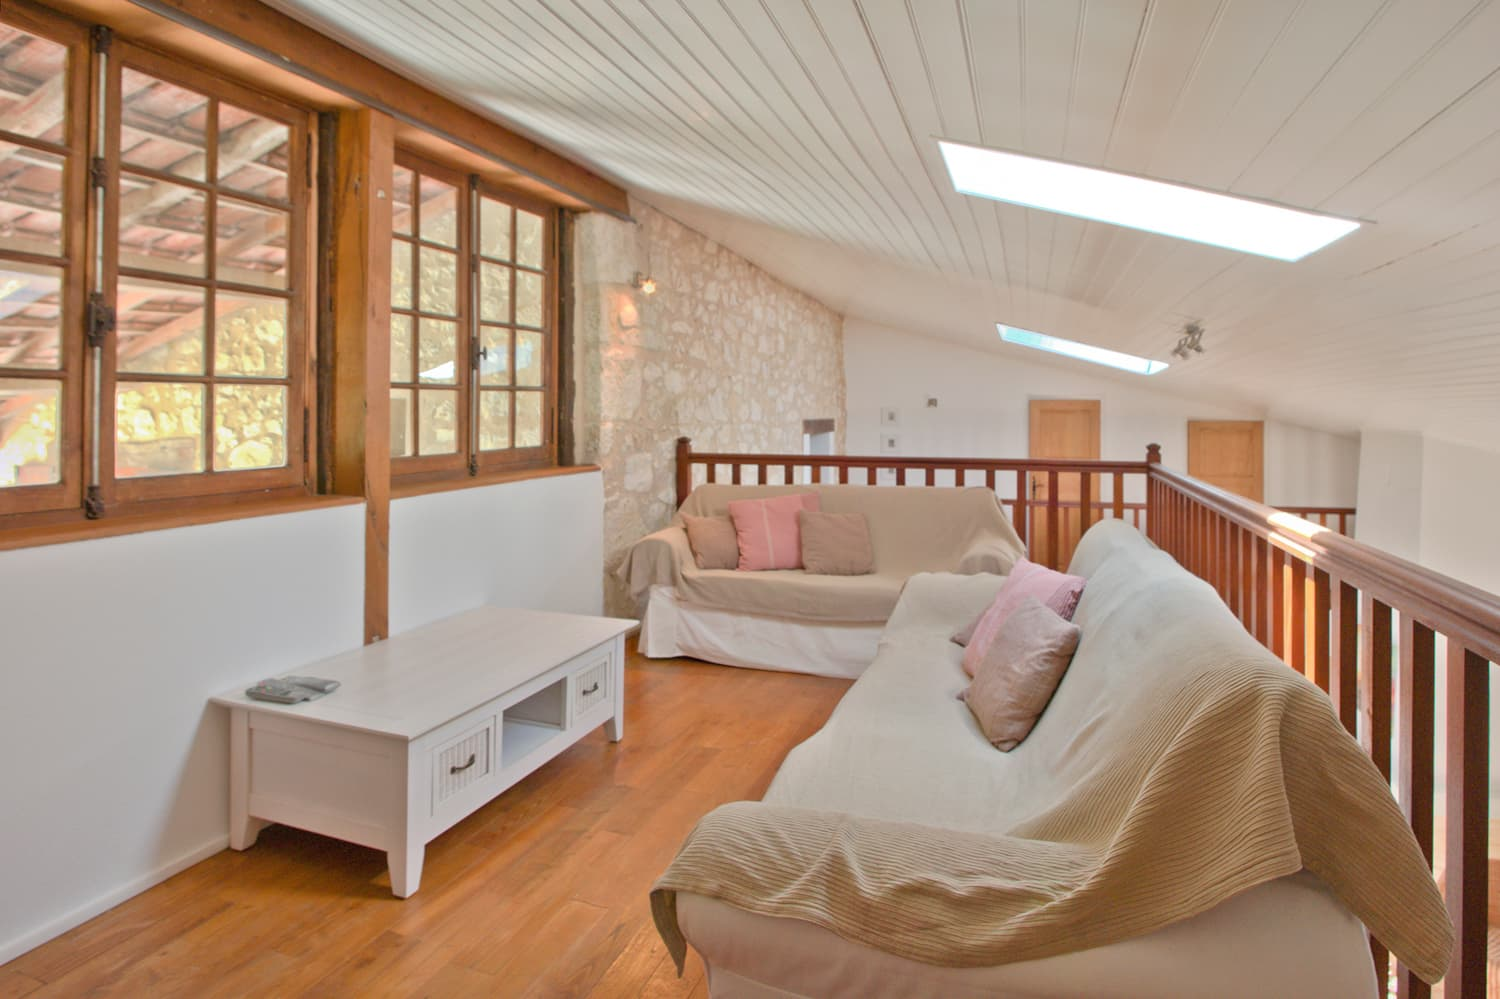 Mezzanine in South West France holiday accommodation